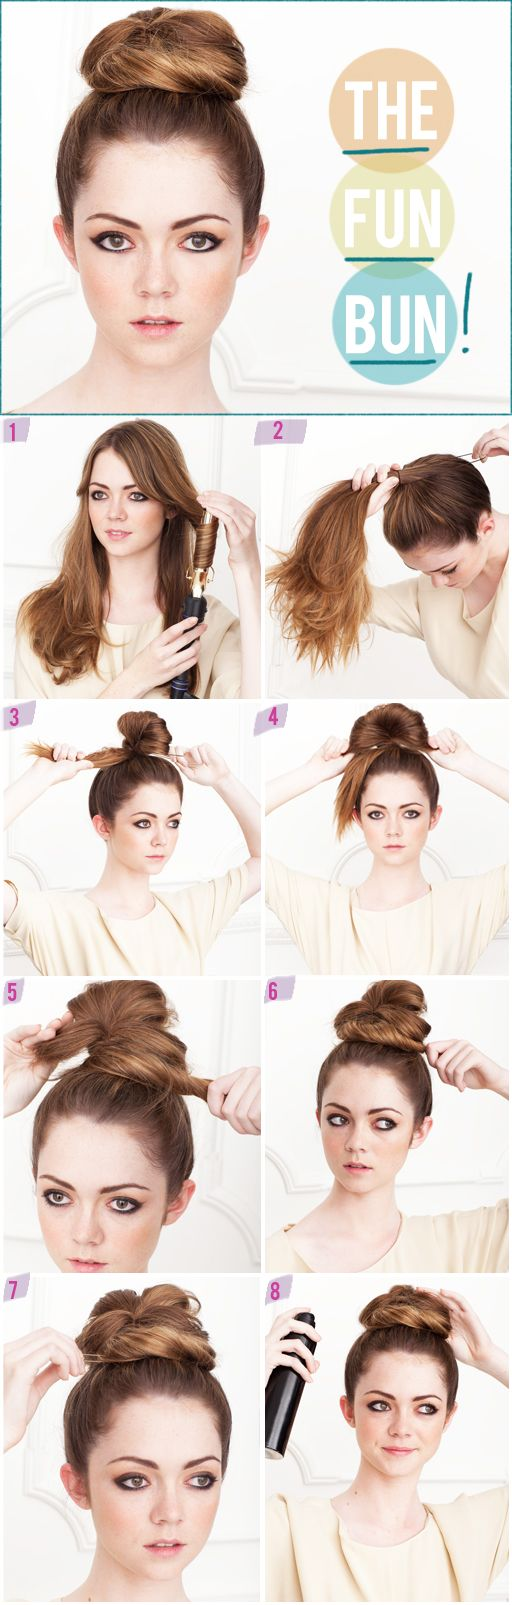 DIY Prom hairHair Ideas, Hair Tutorials, Fun Buns, Long Hair, Beautiful, Messy Buns, Hair Style, Hair Buns, High Bun